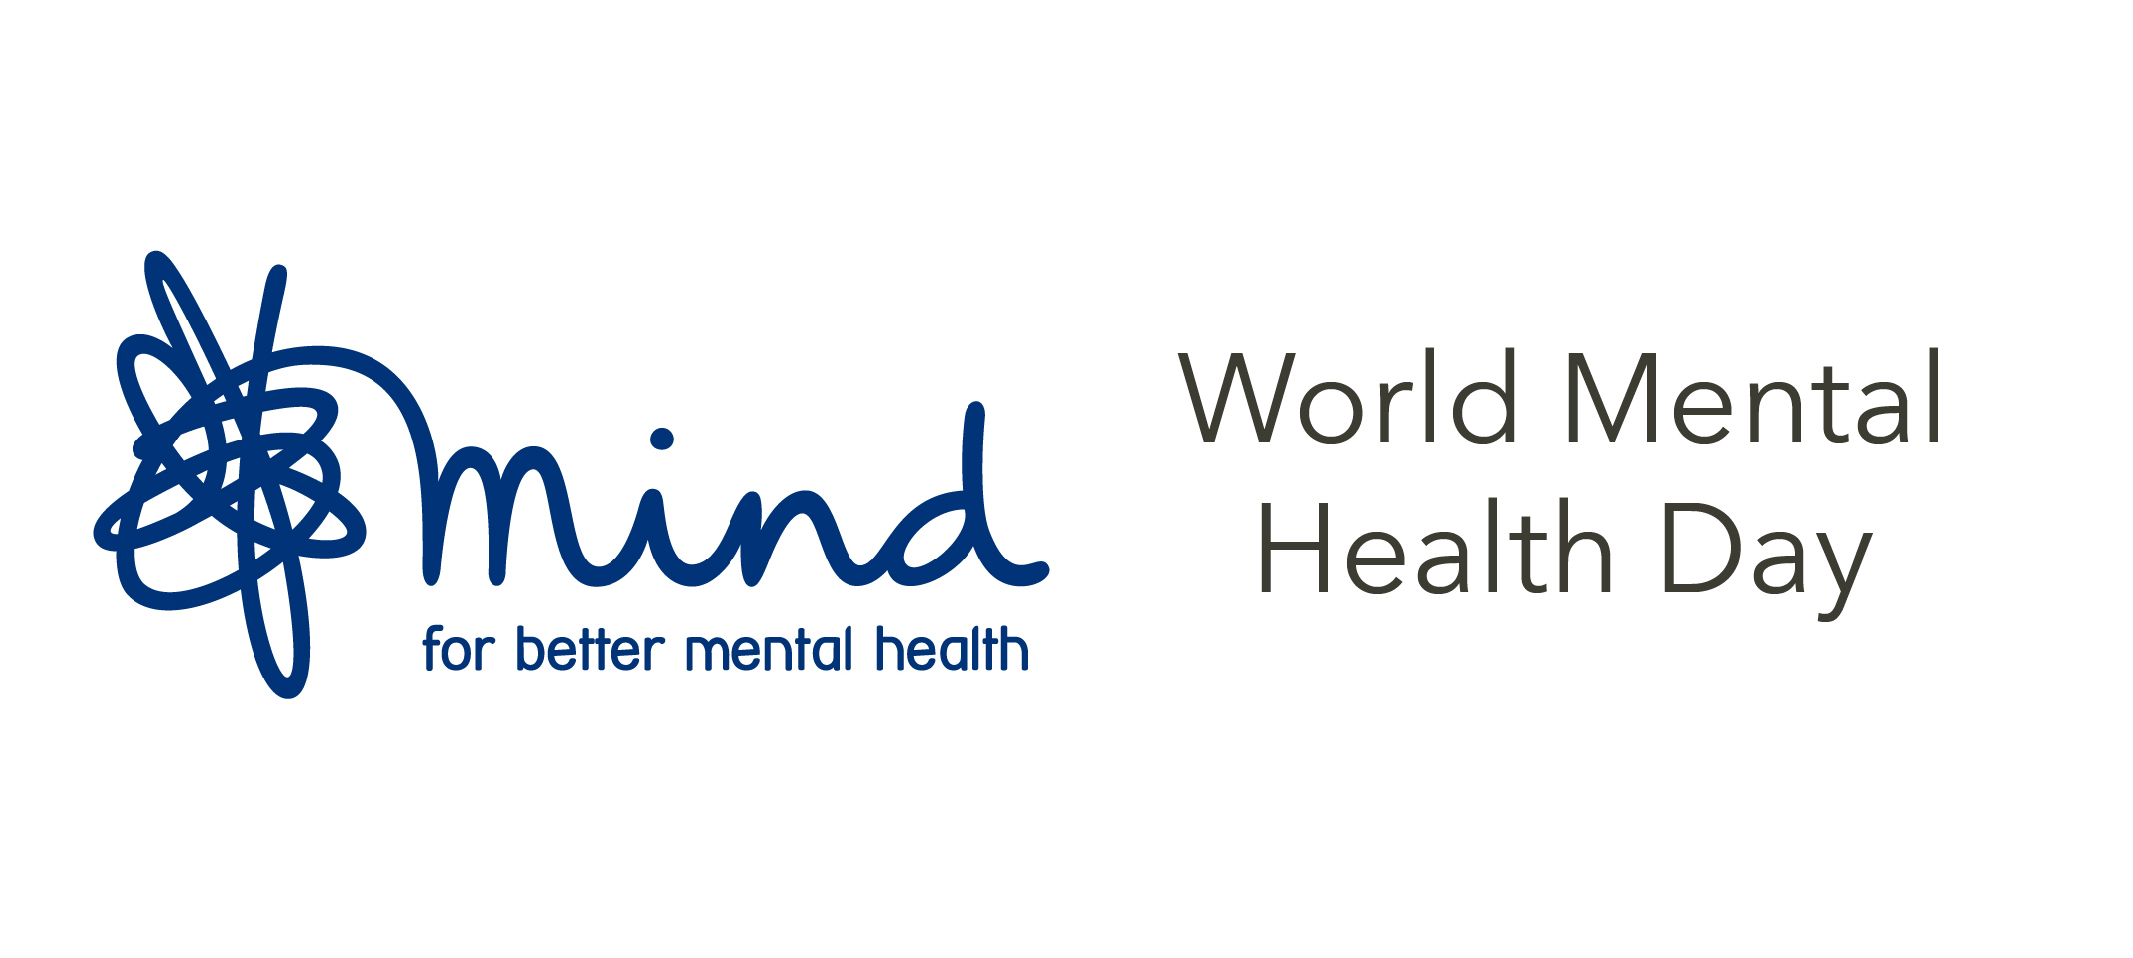 World Mental Health Day- do one thing for better mental health